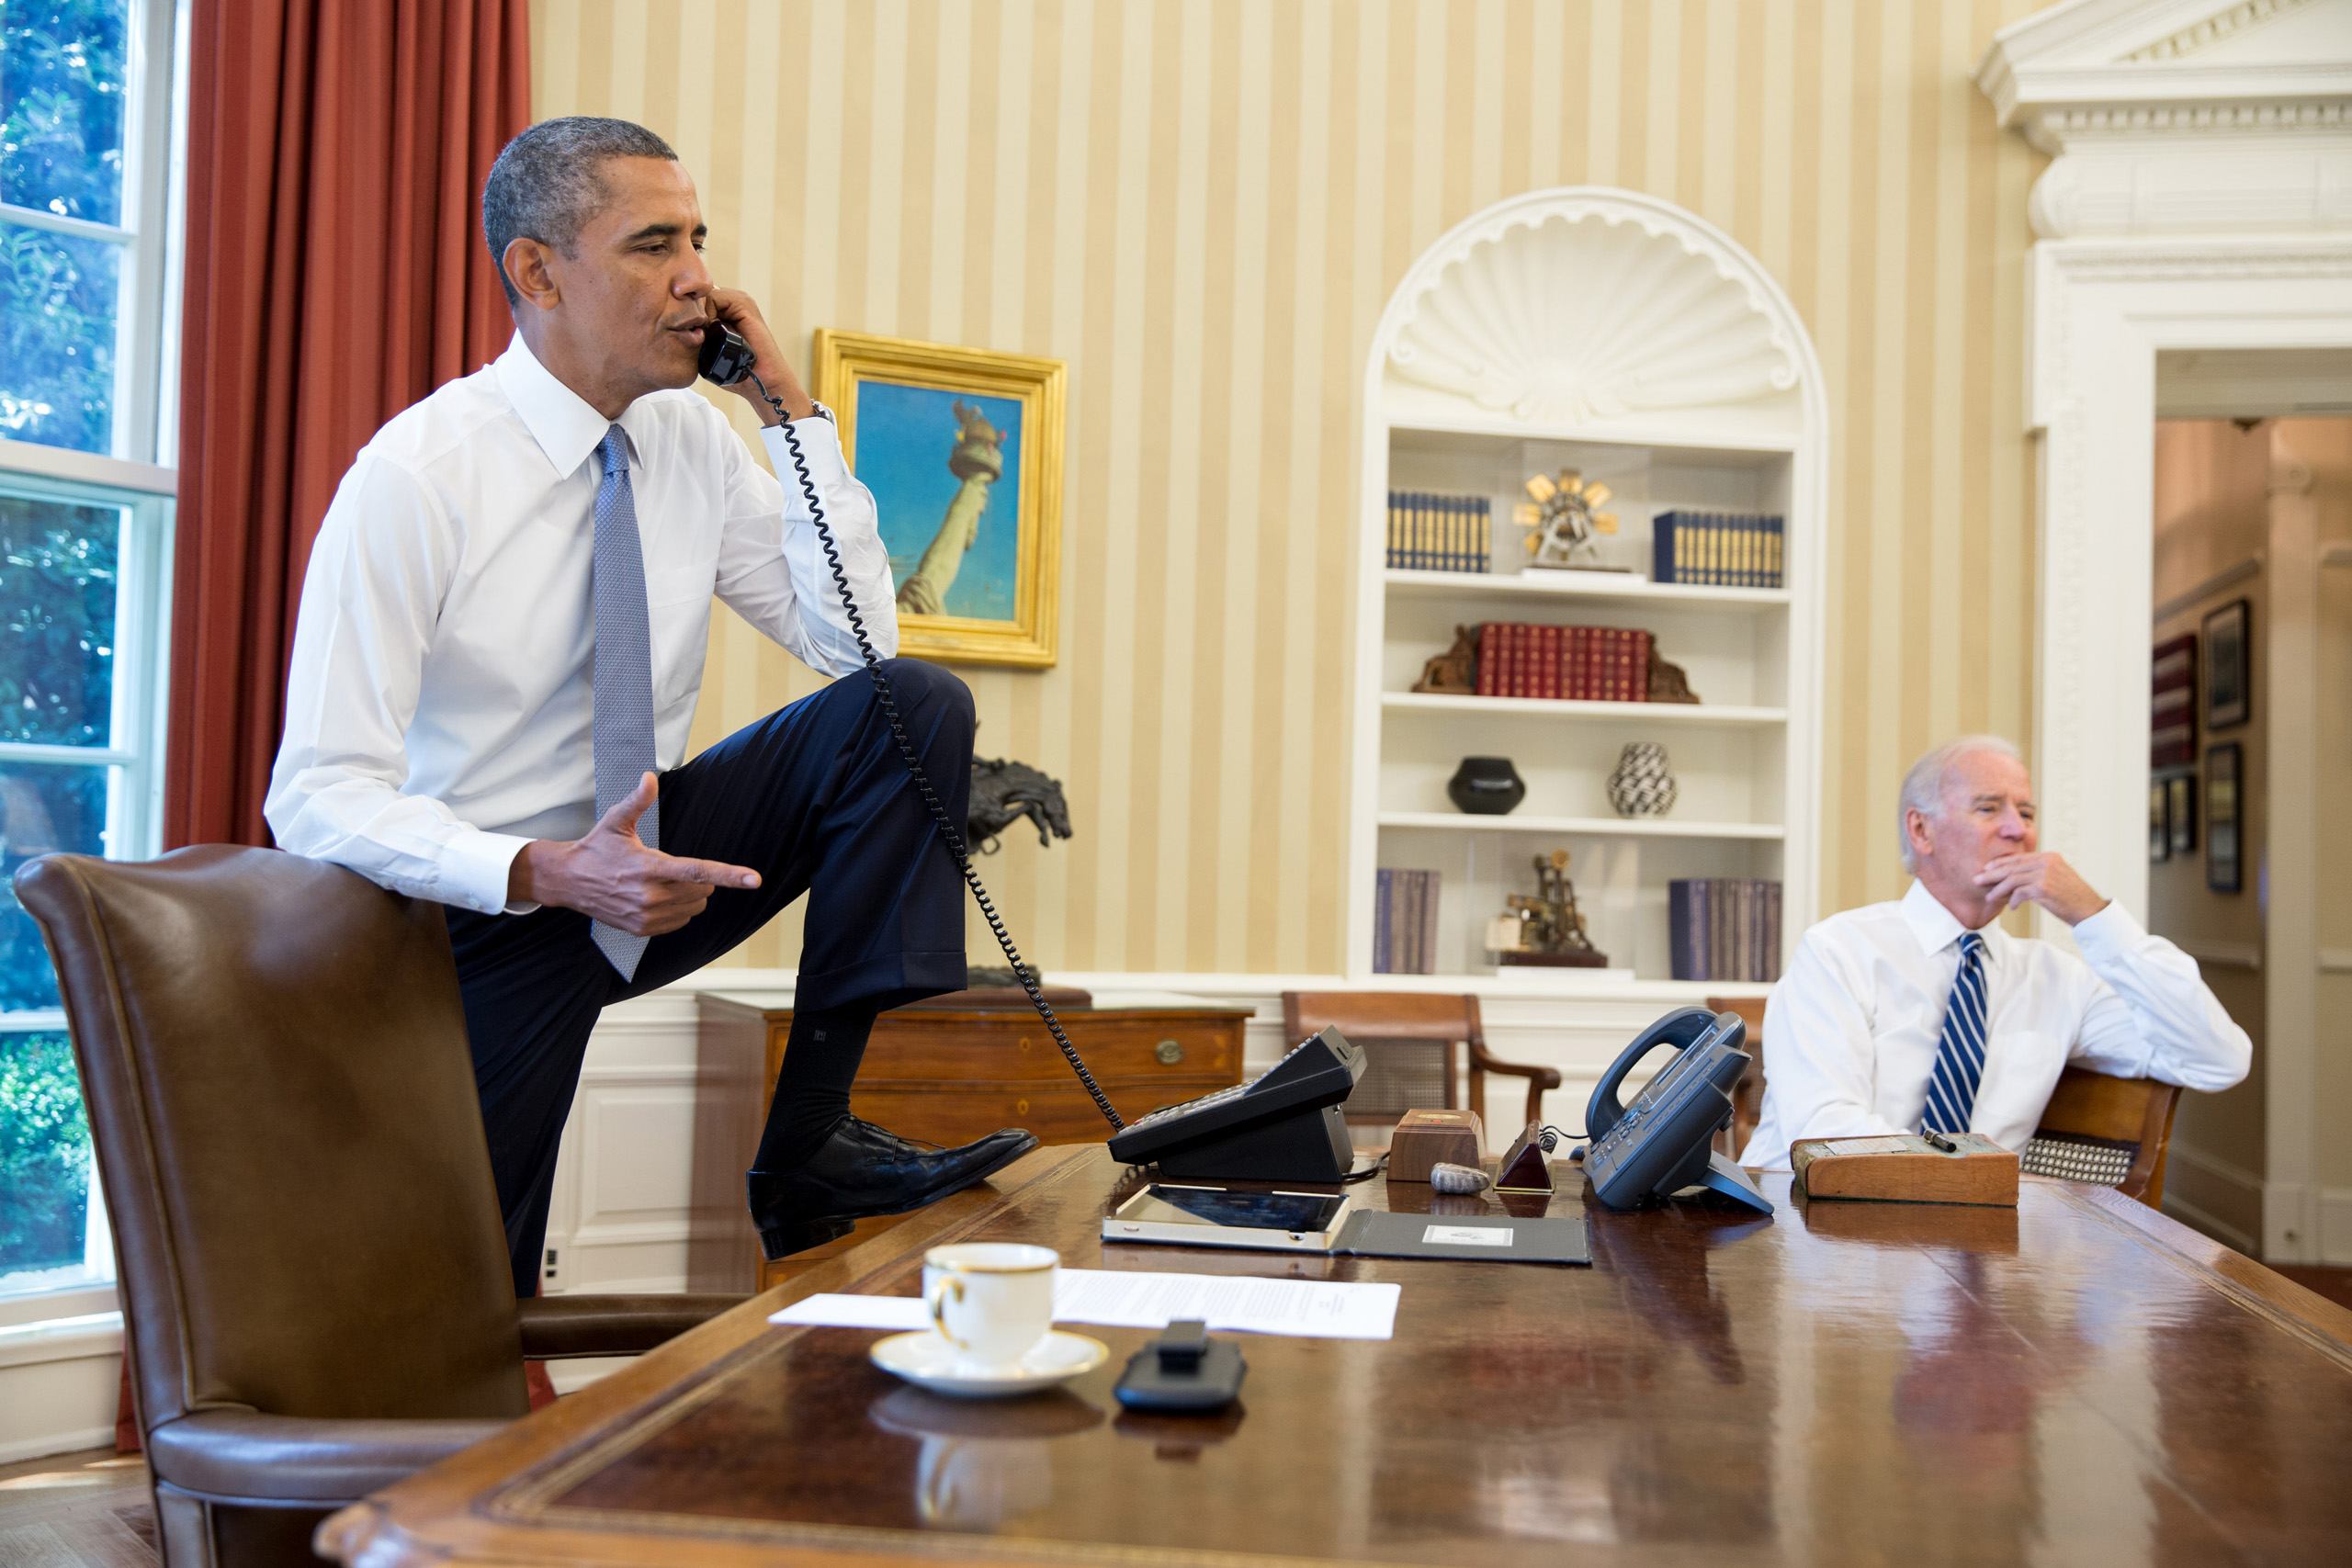 U.S. President Barack Obama (L) talks on the phone with Speaker of the House Boehner as Vice President Joe Biden listens in the Oval Office of the White House August 31, 2013 in Washington, DC.